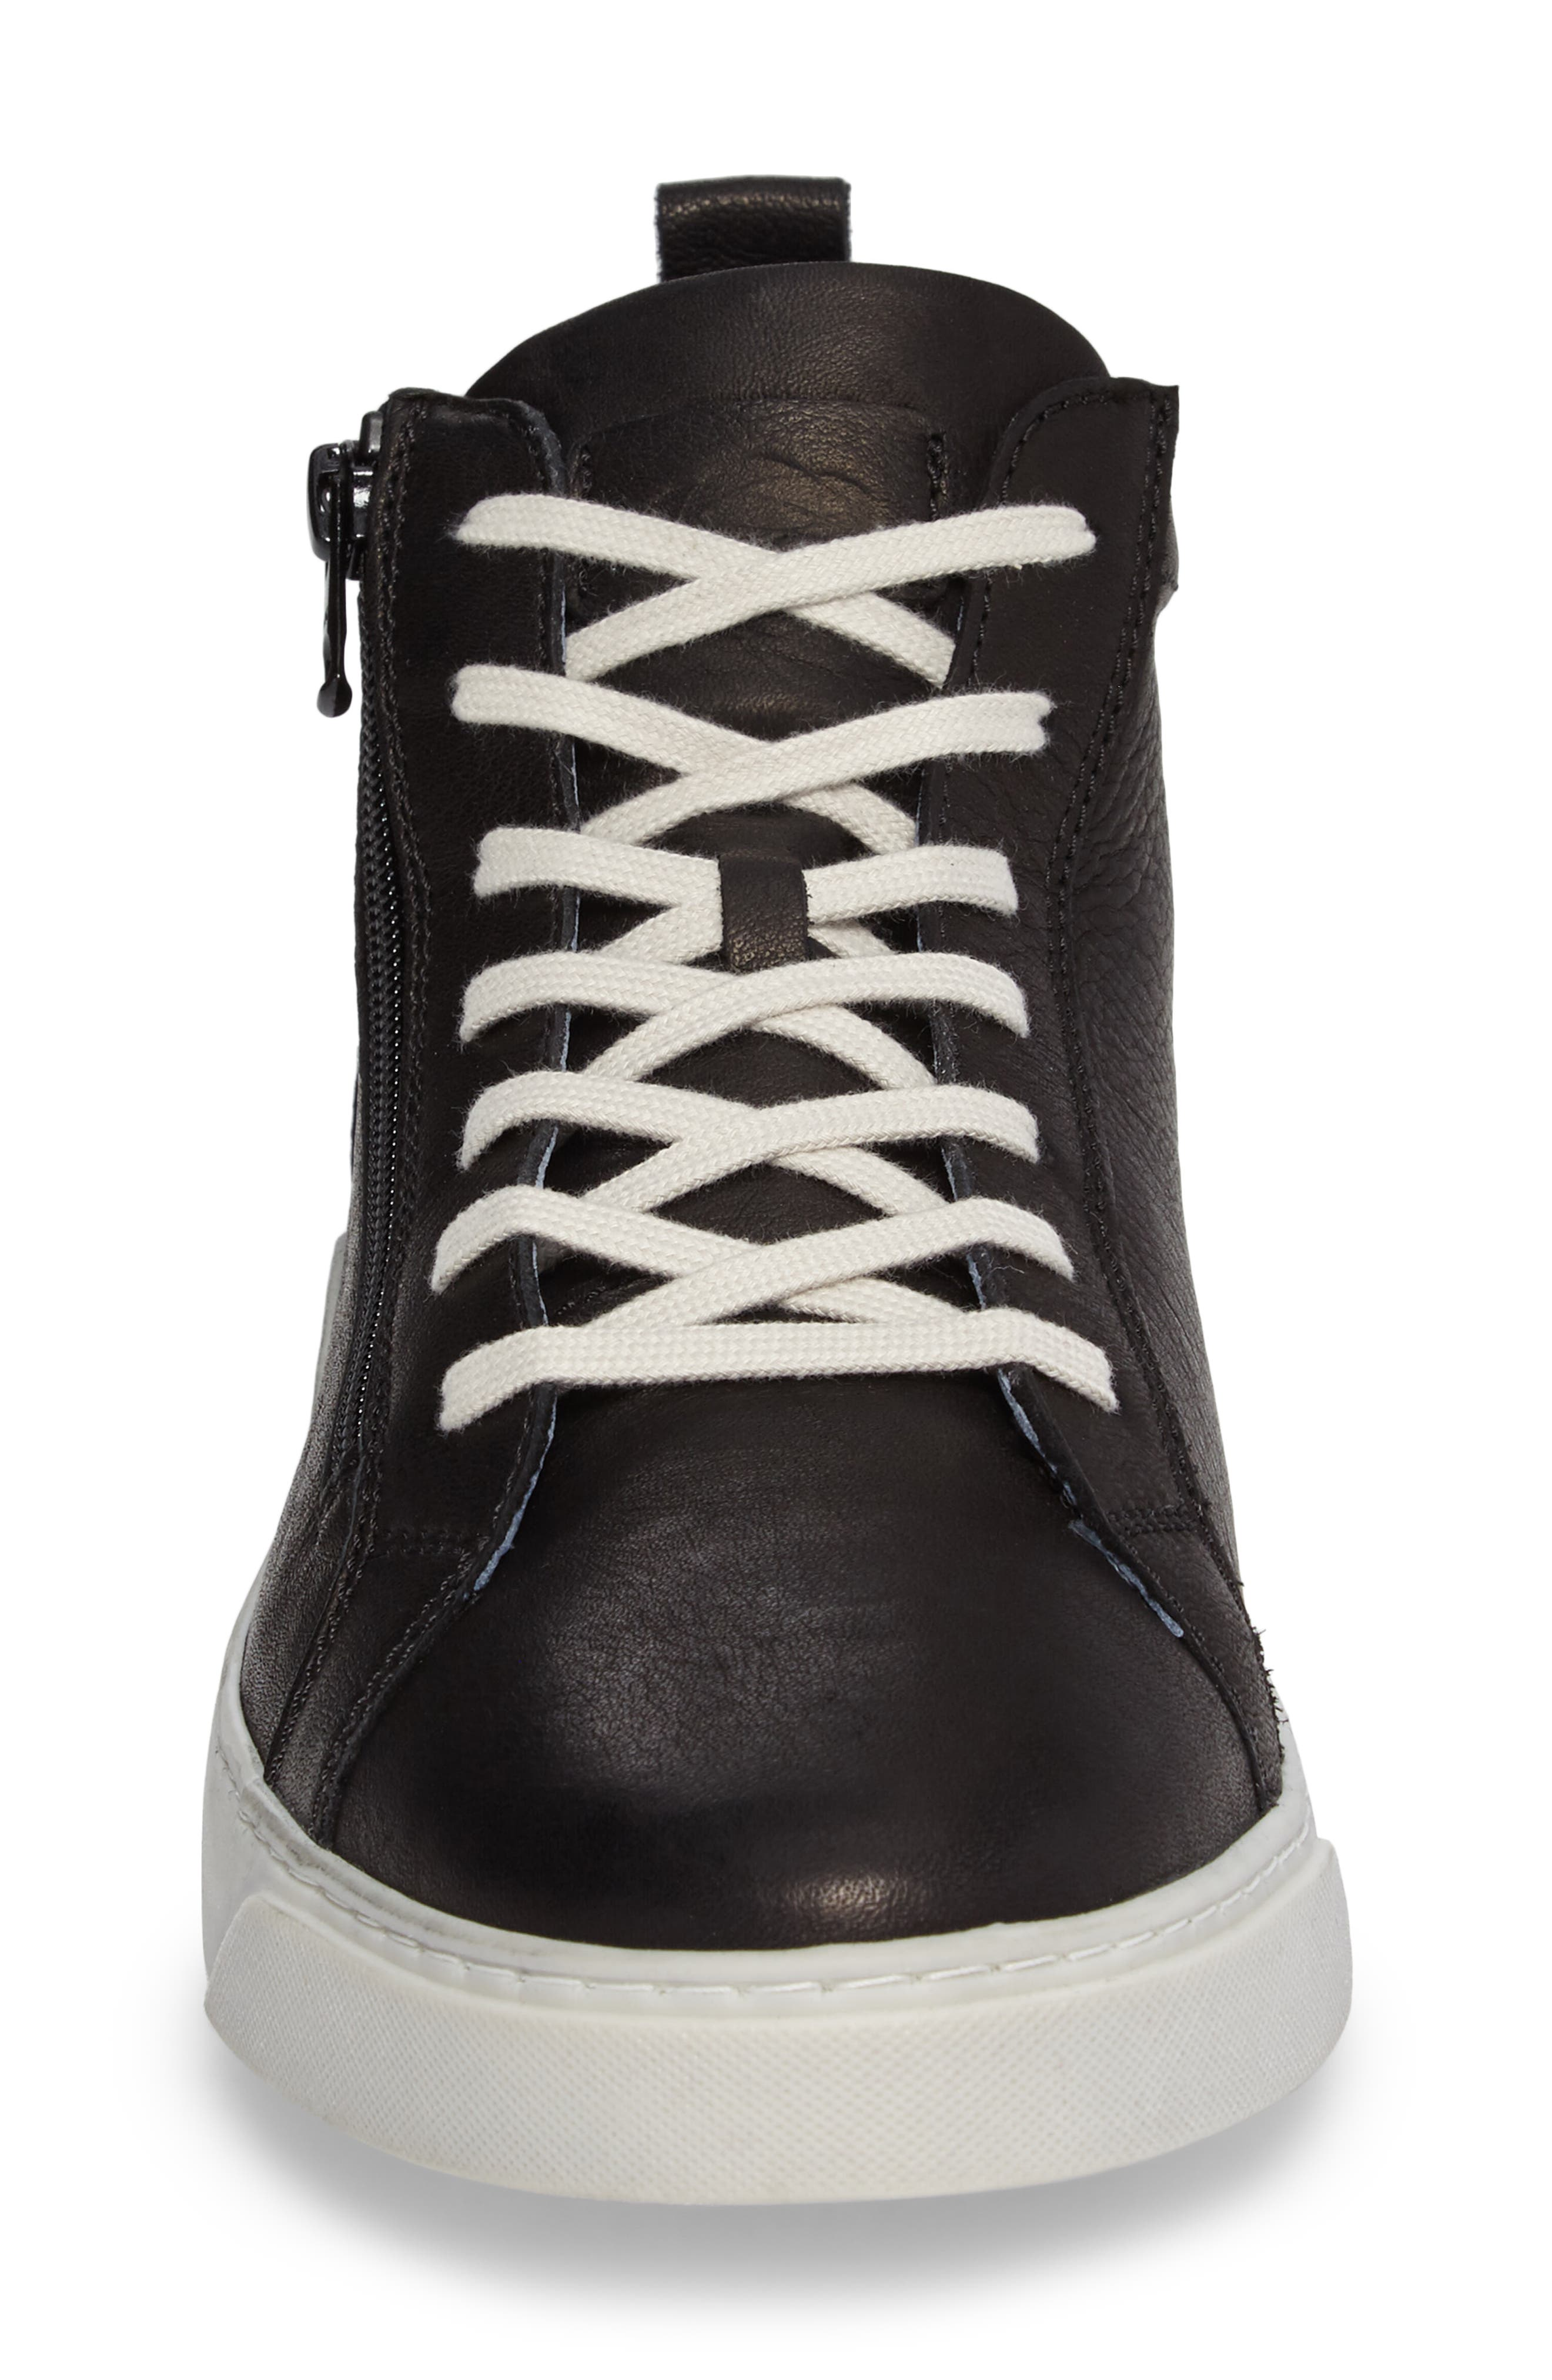 Irwin Mid Top Sneaker,                             Alternate thumbnail 4, color,                             Black Leather